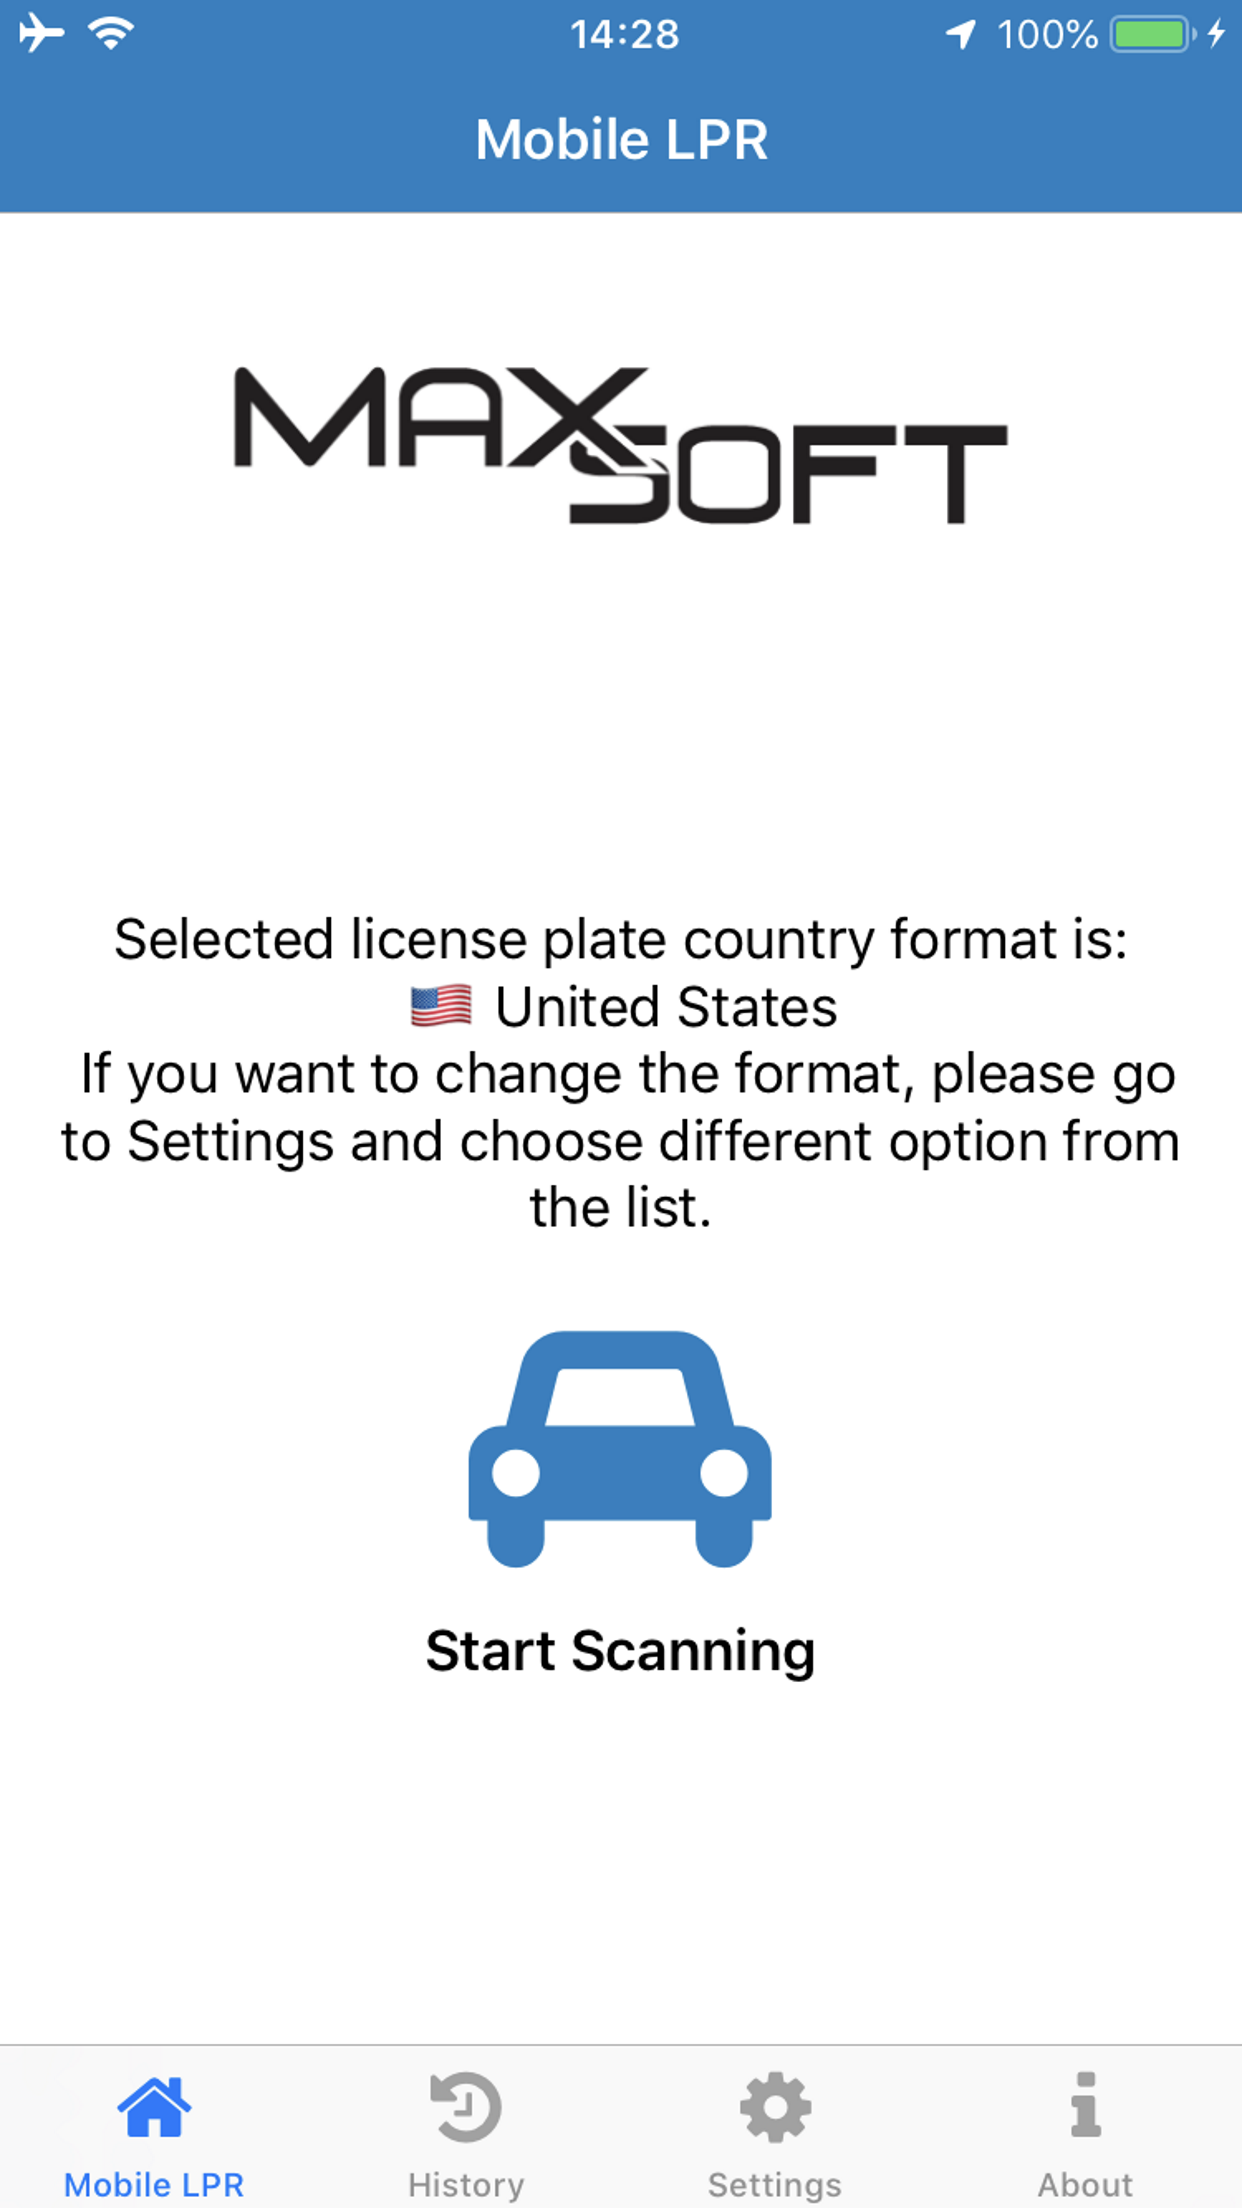 Mobile License Plate Recognition App for iOS and Android